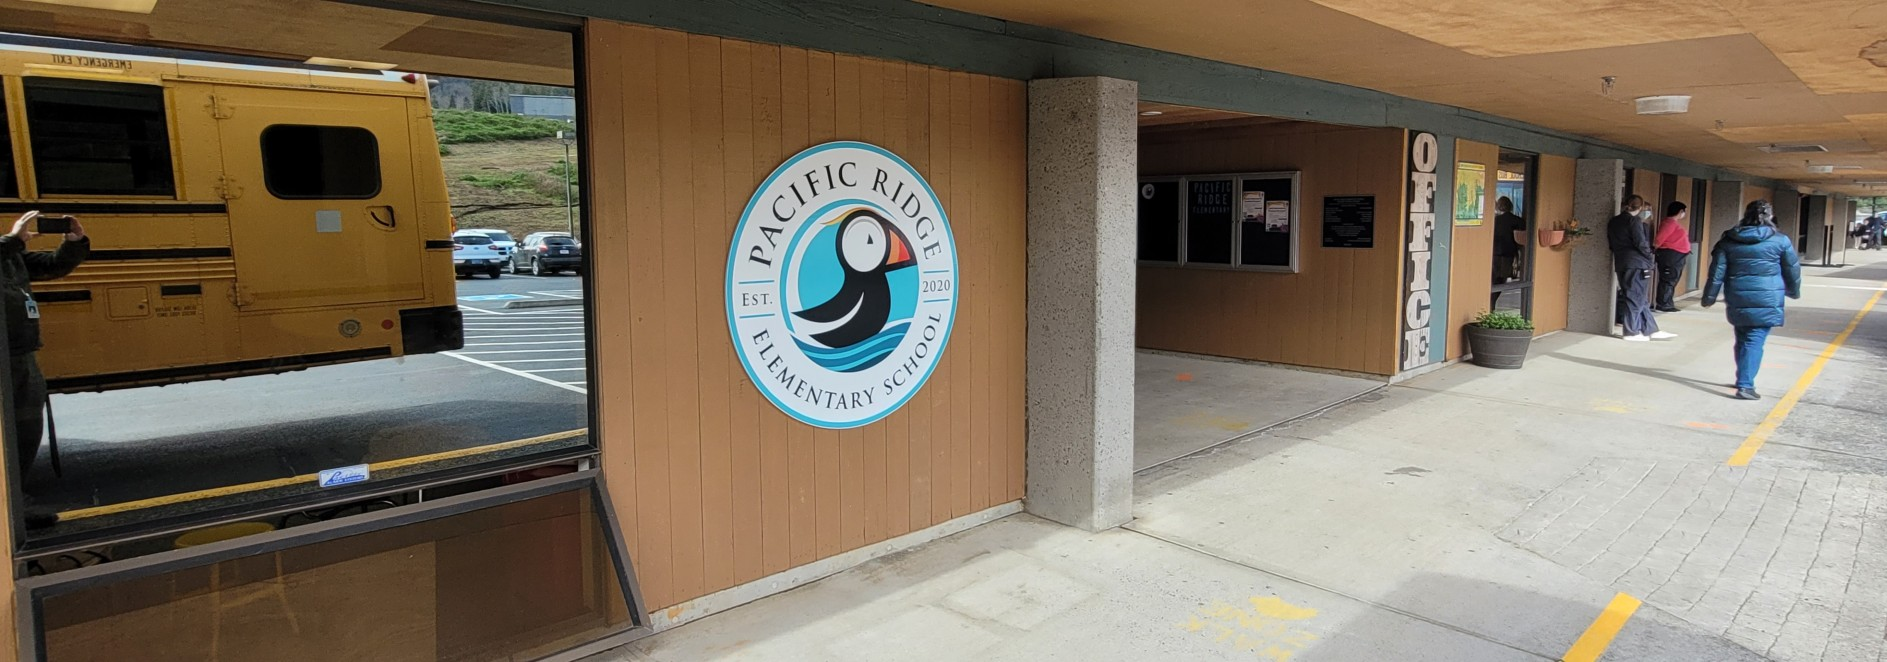 Pacific Ridge Elementary Entrance